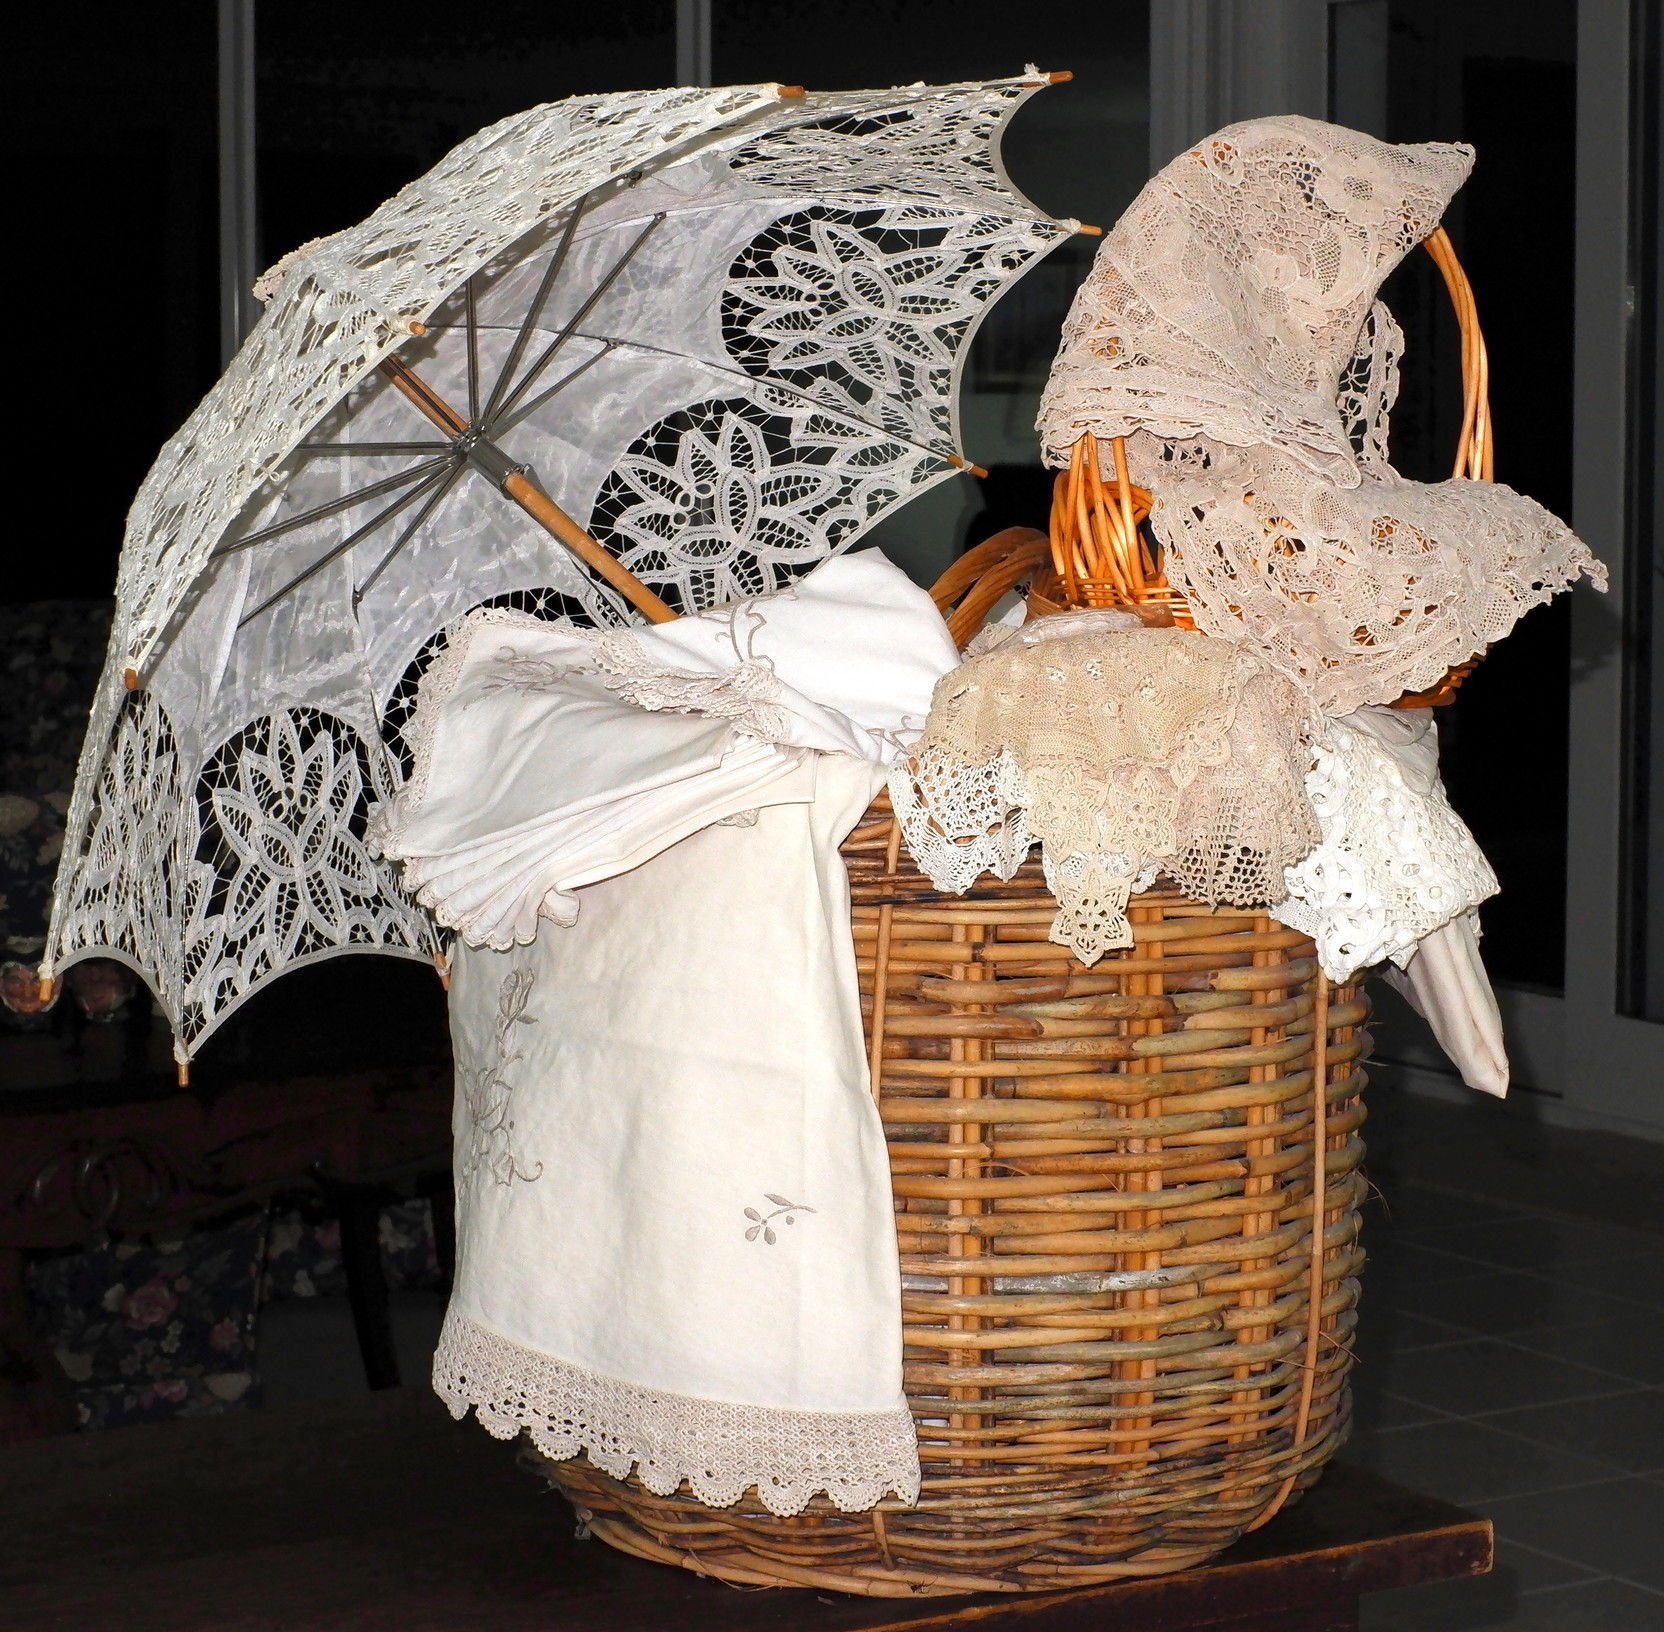 'Melange of Vintage and Antique Lace with Various Wicker Baskets and a Lace Parasol'